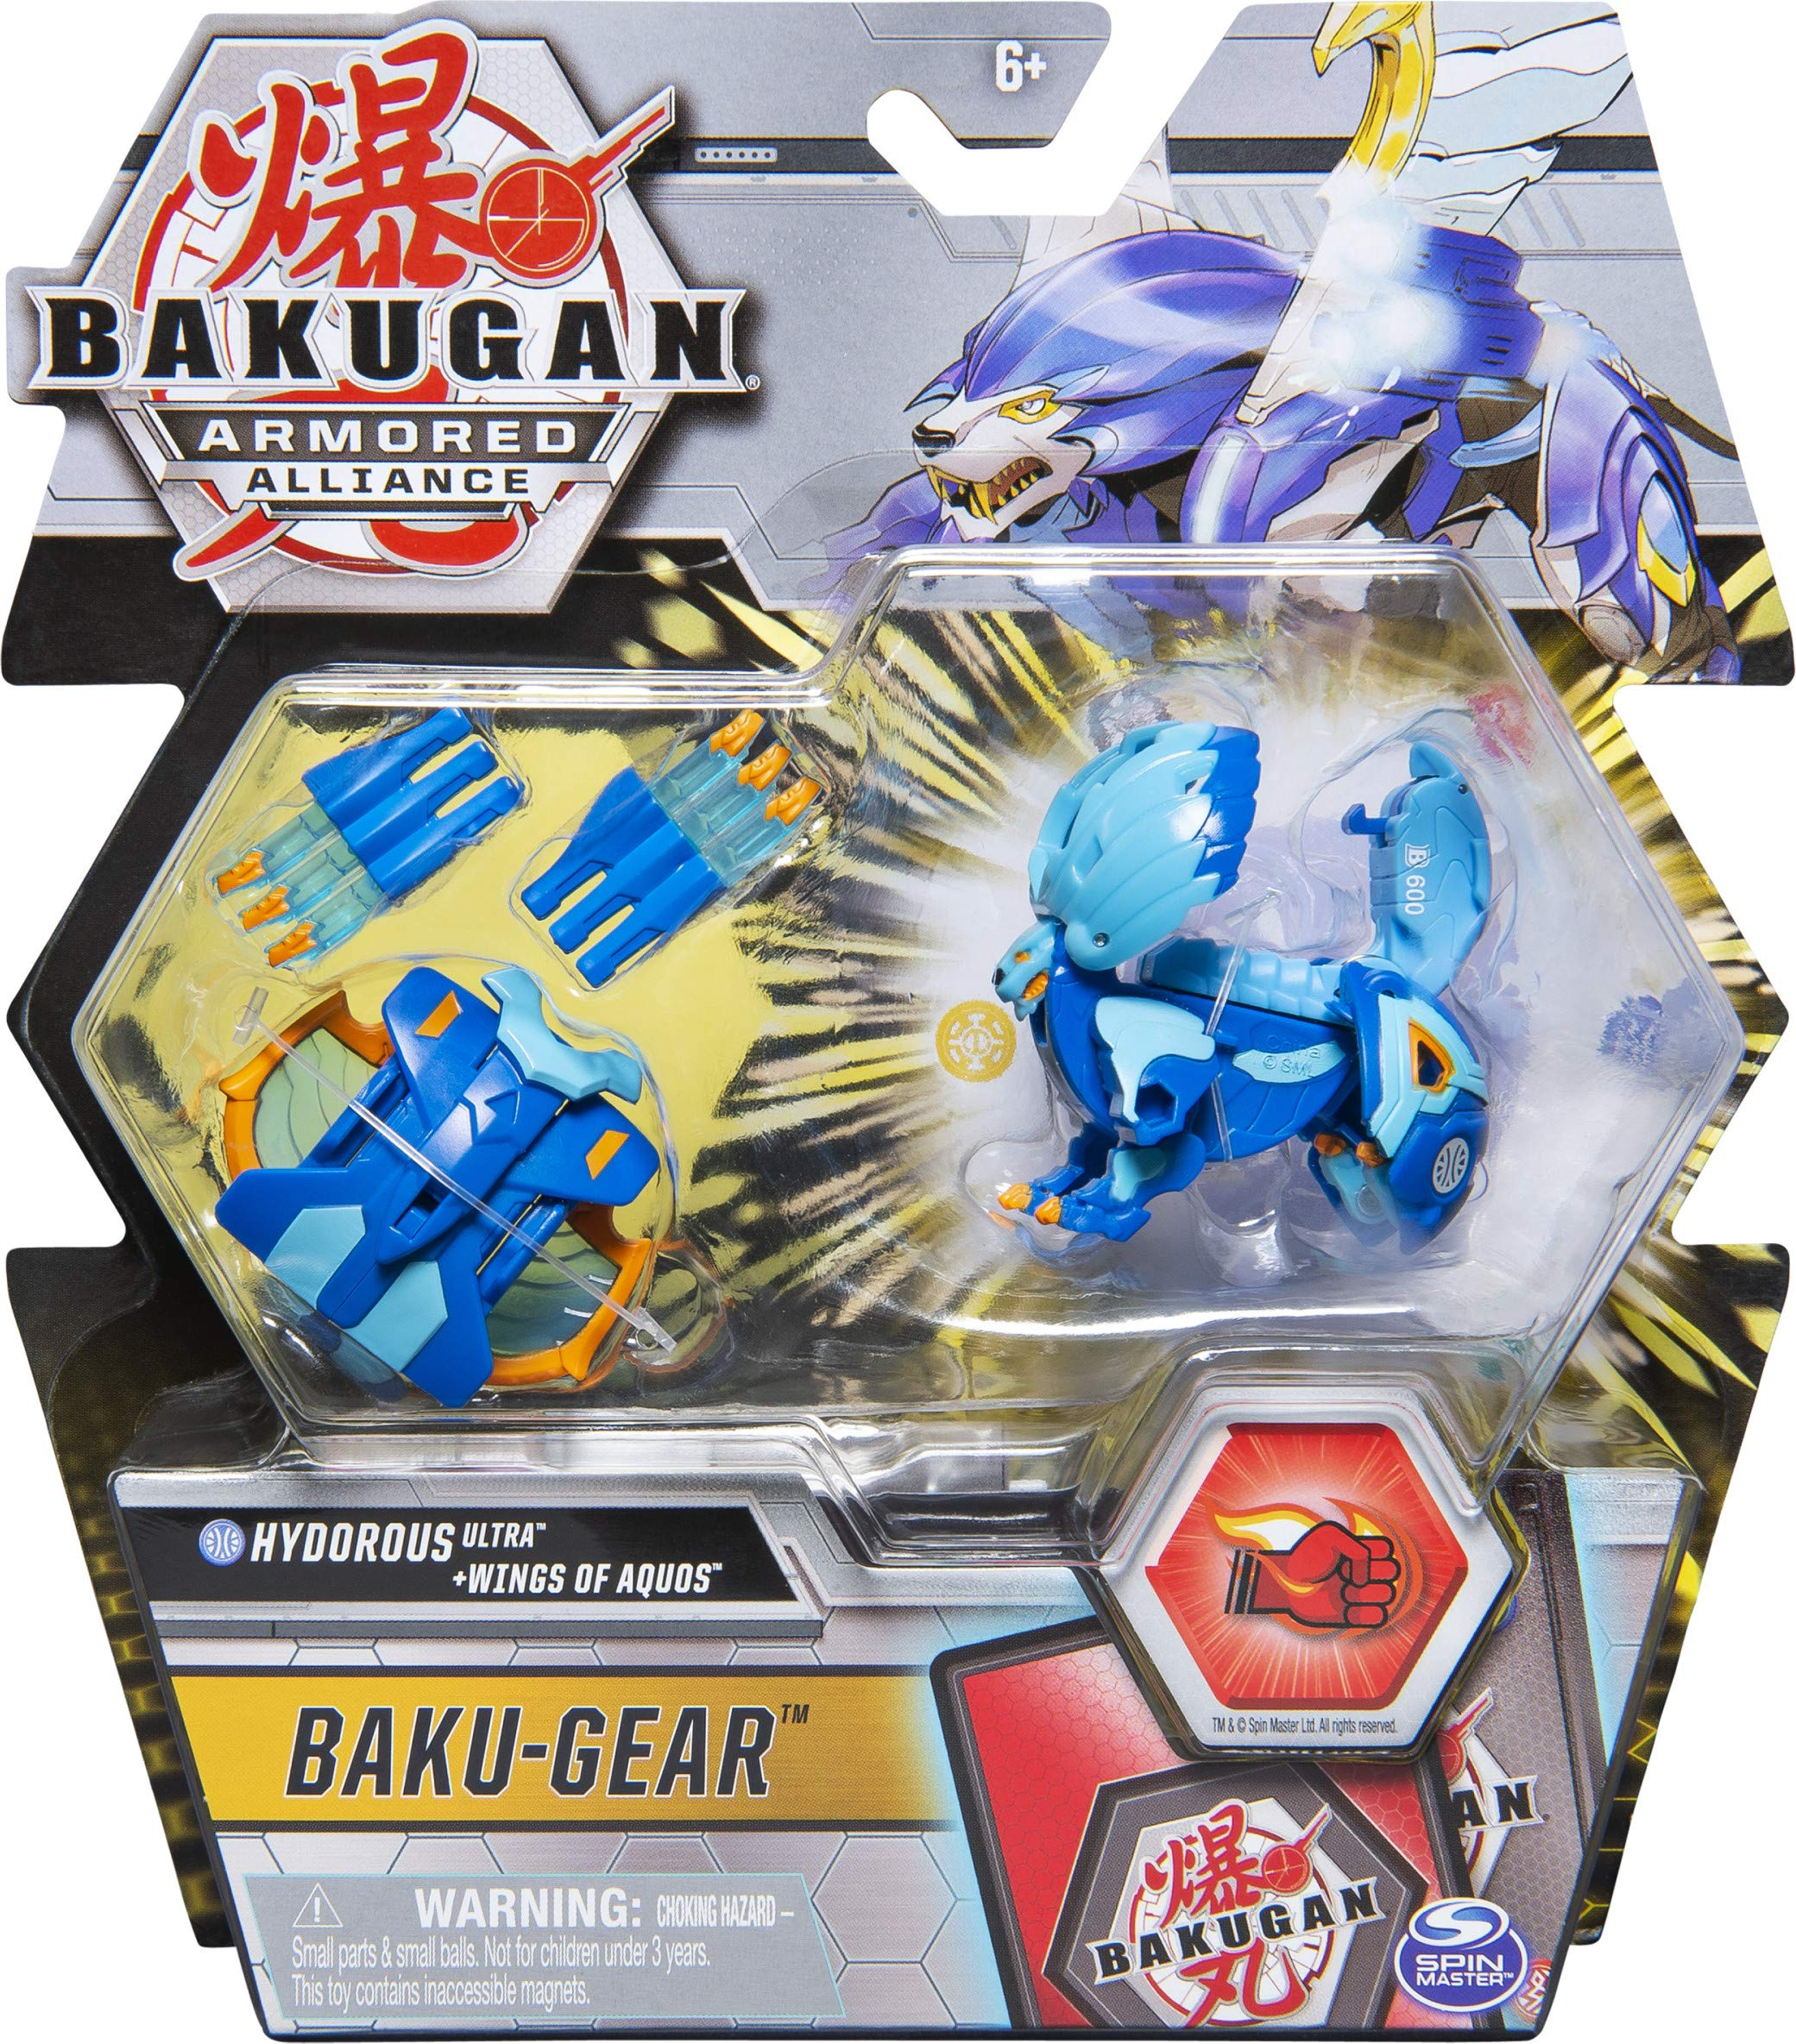 Bakugan Ultra, Hydorous with Transforming Baku-Gear, Armored Alliance 3-inch Tall Collectible Action Figure